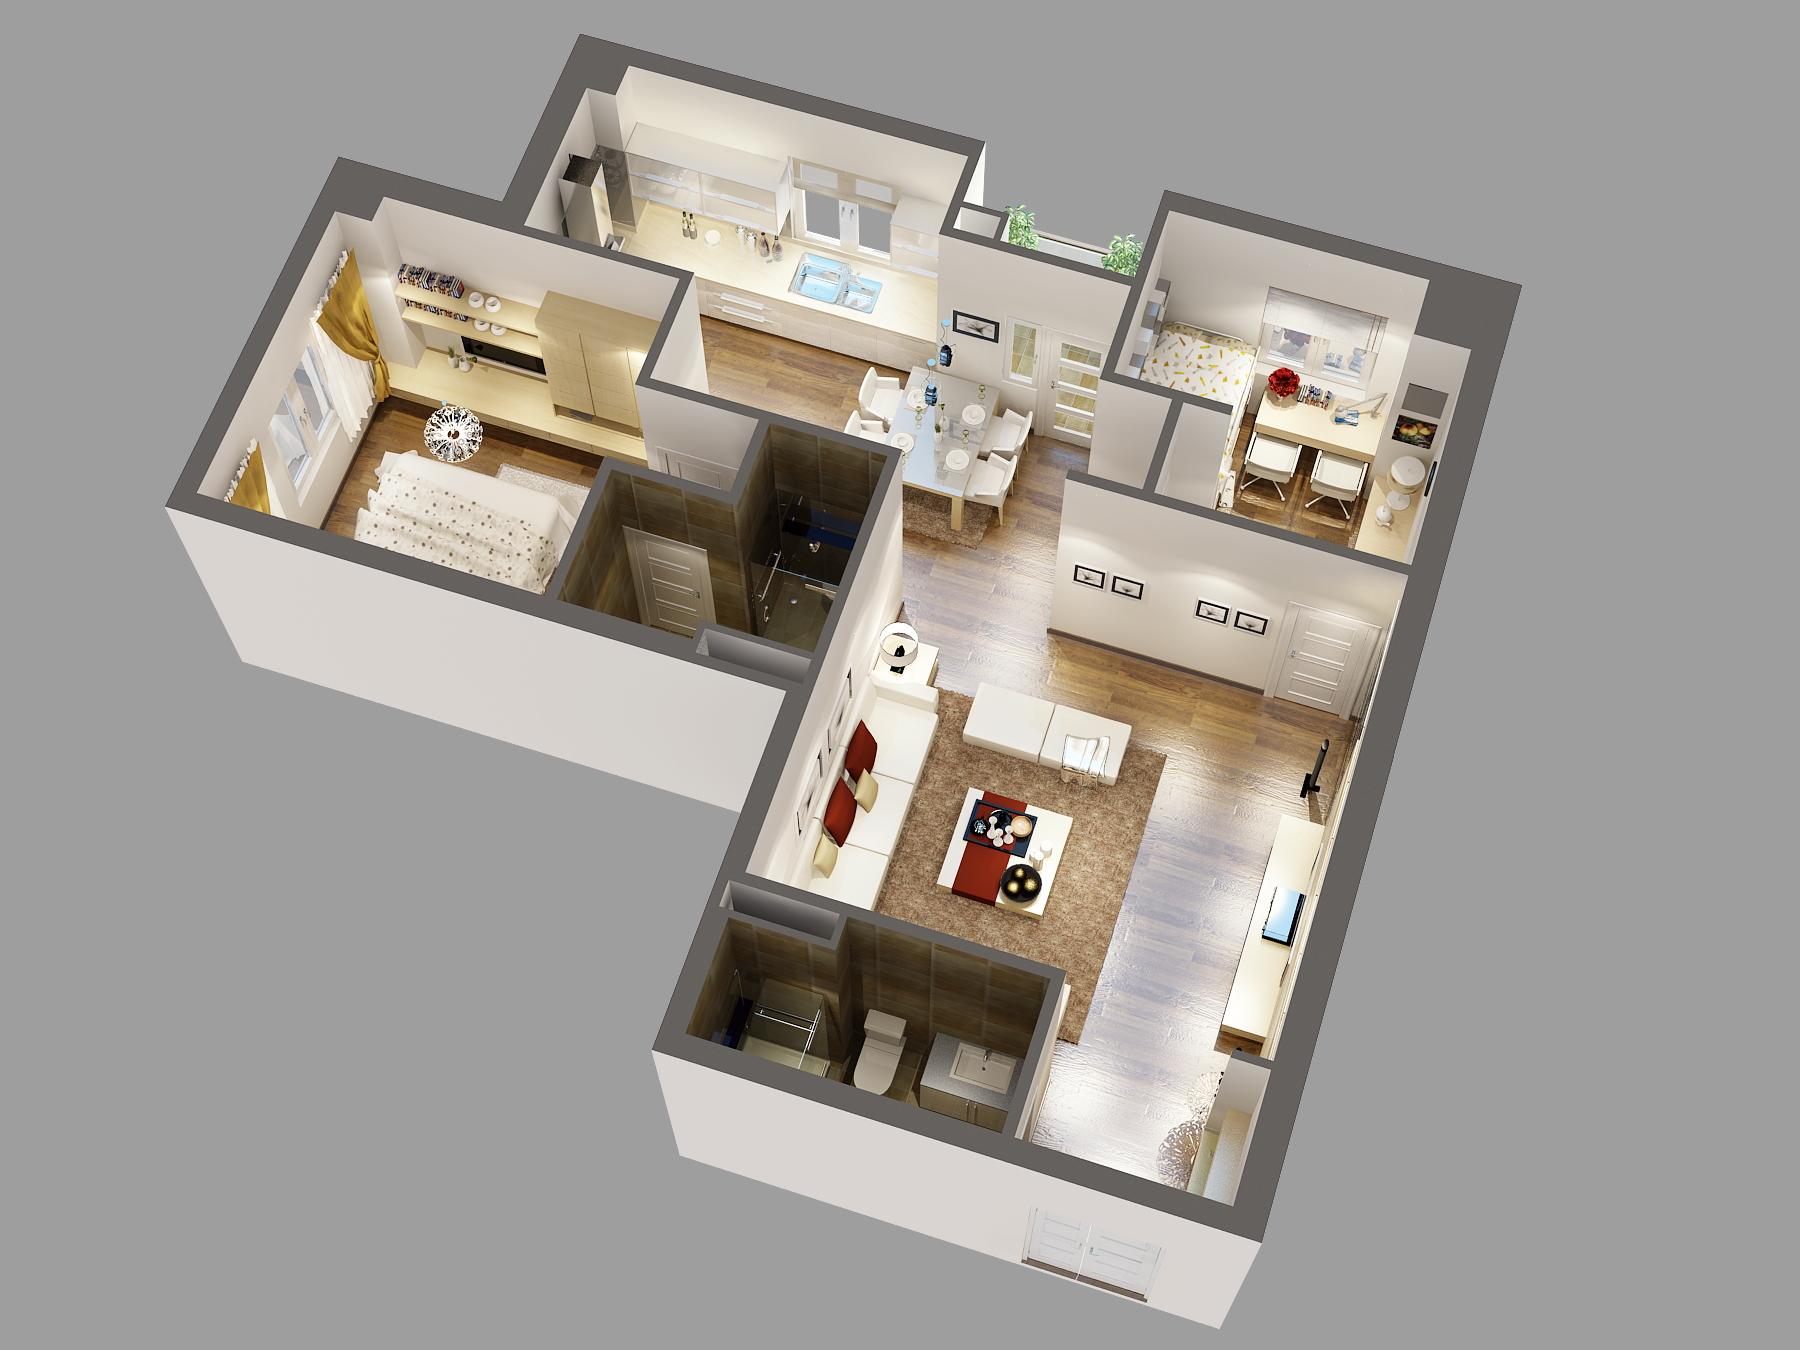 Model Homes Images Interior Detailed House Cutaway 3d Model 3d Model Max Cgtrader